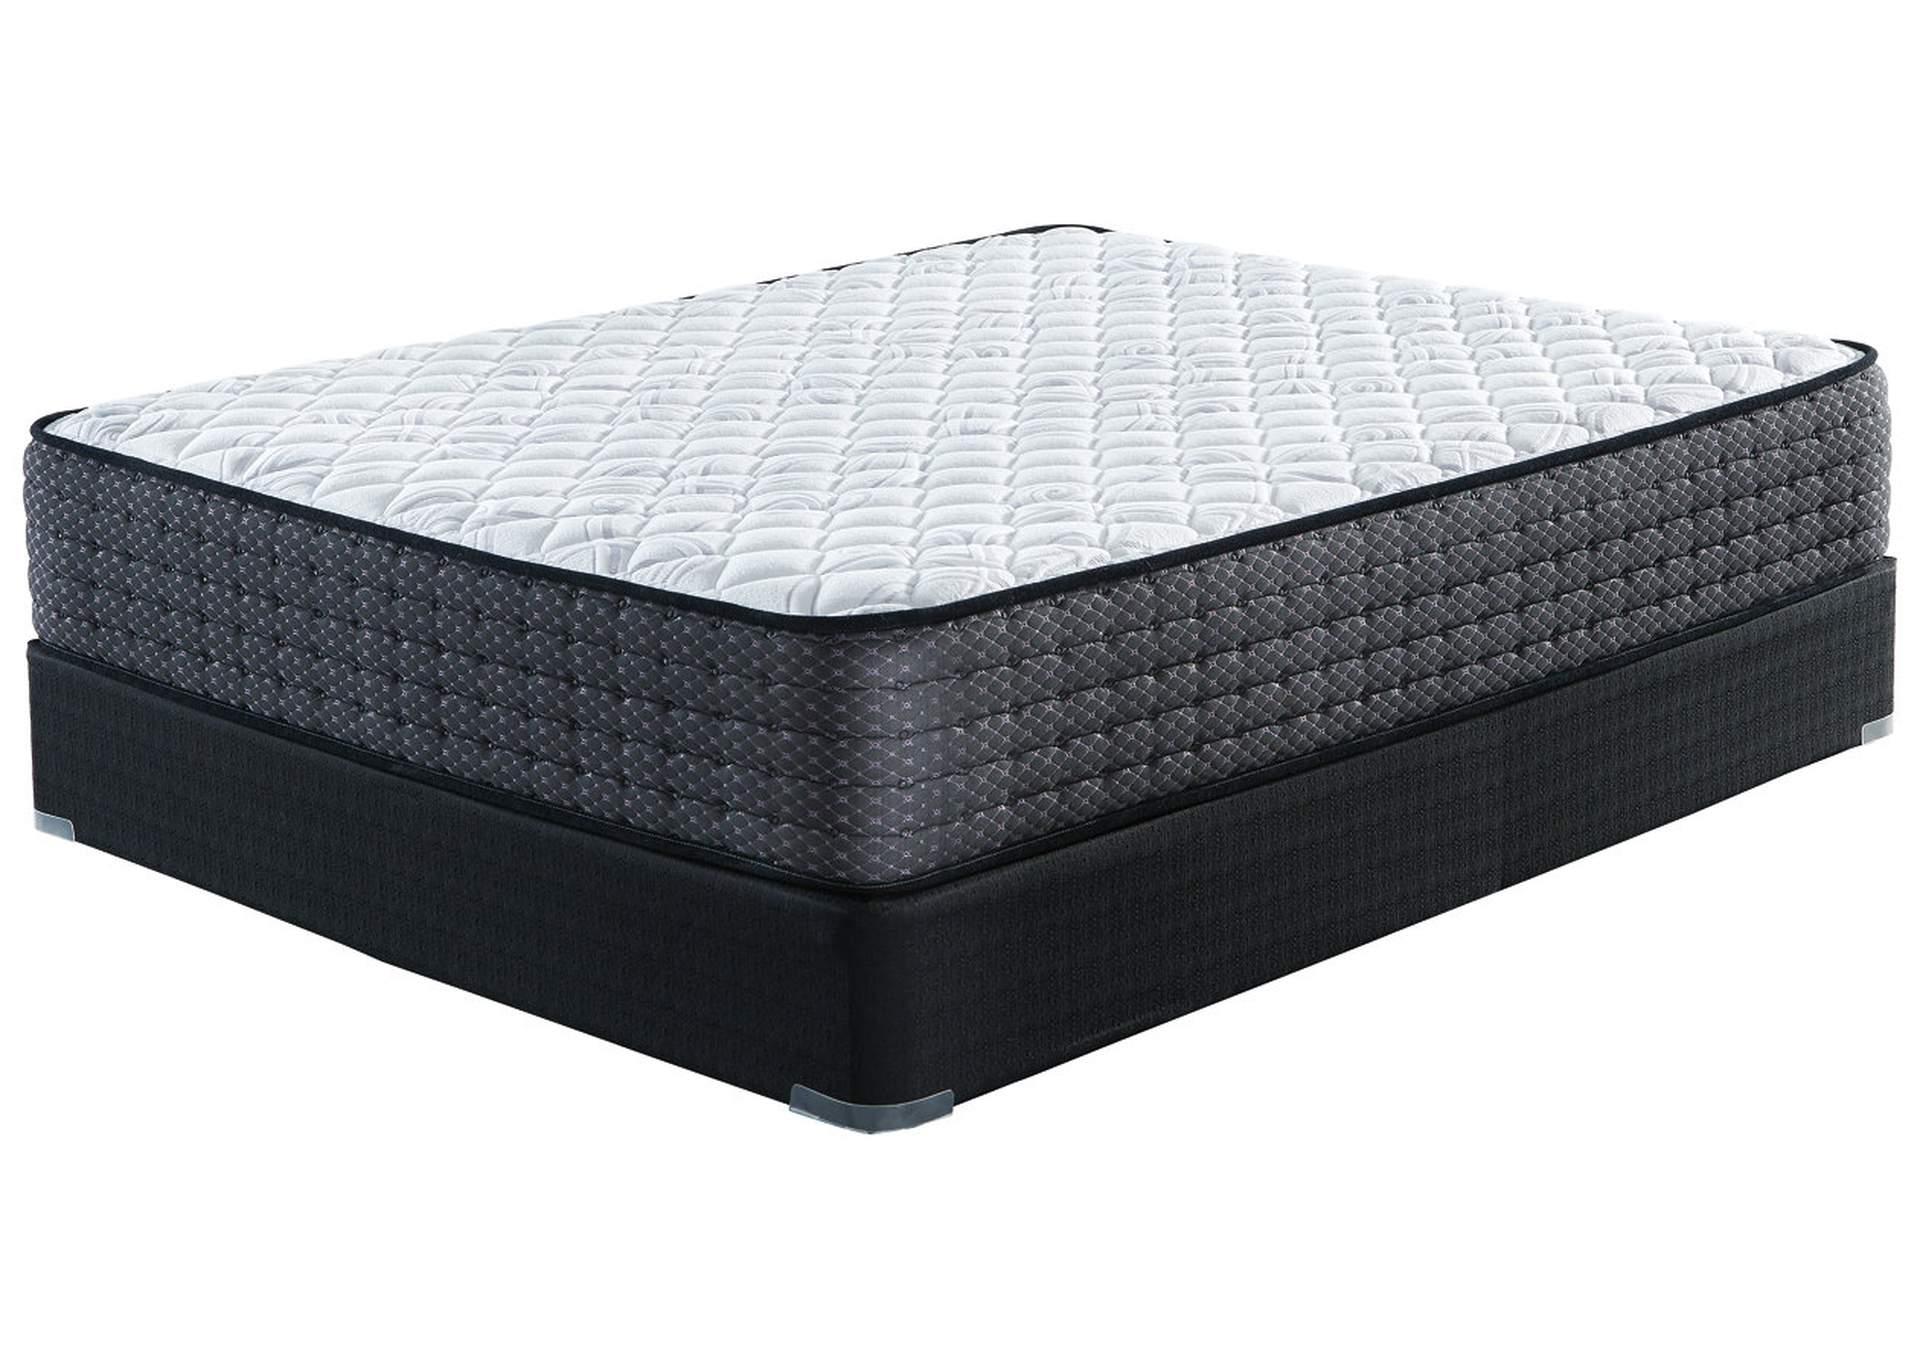 Limited Edition Firm Queen Mattress,Sierra Sleep by Ashley